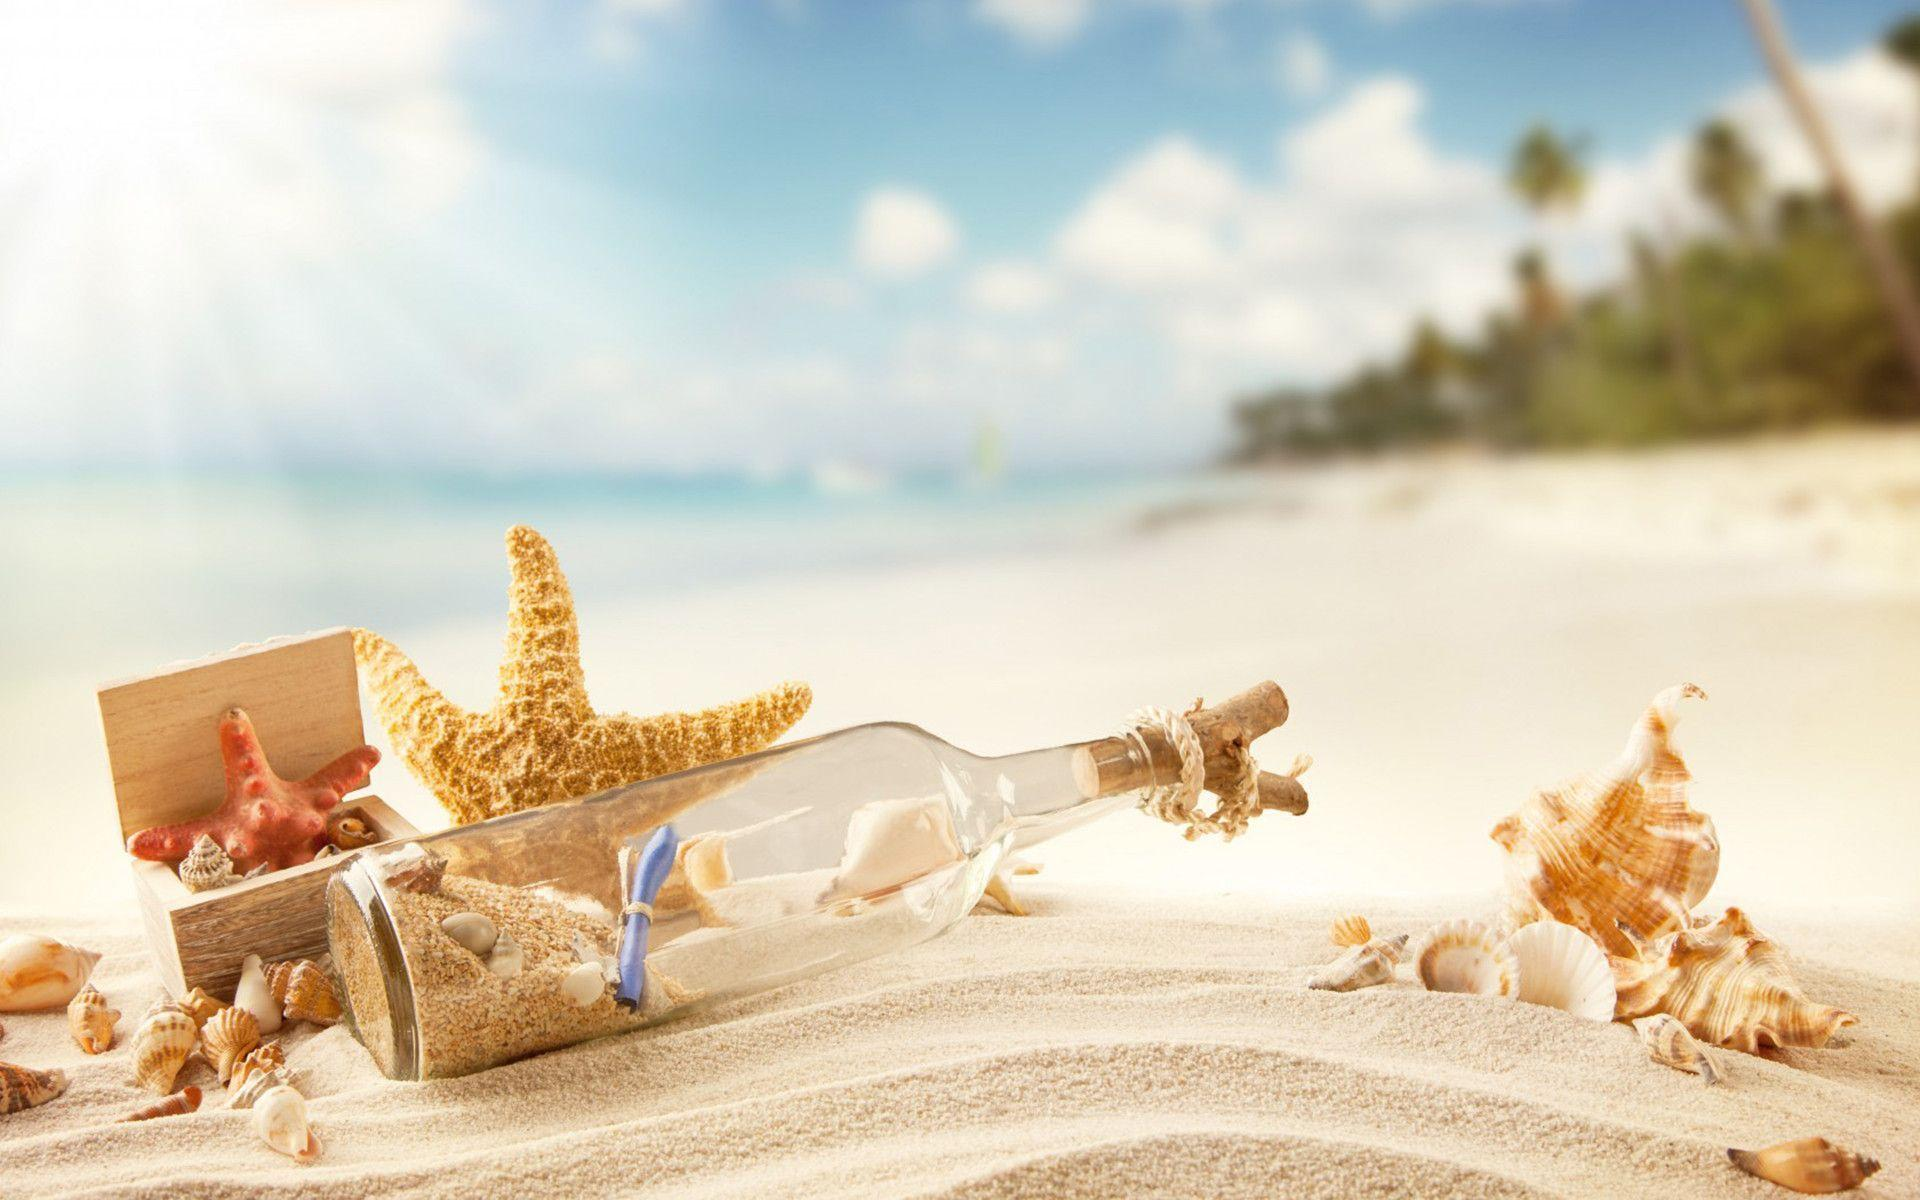 Beach Sea Shell Collection, Bottle, Sand widescreen wallpapers